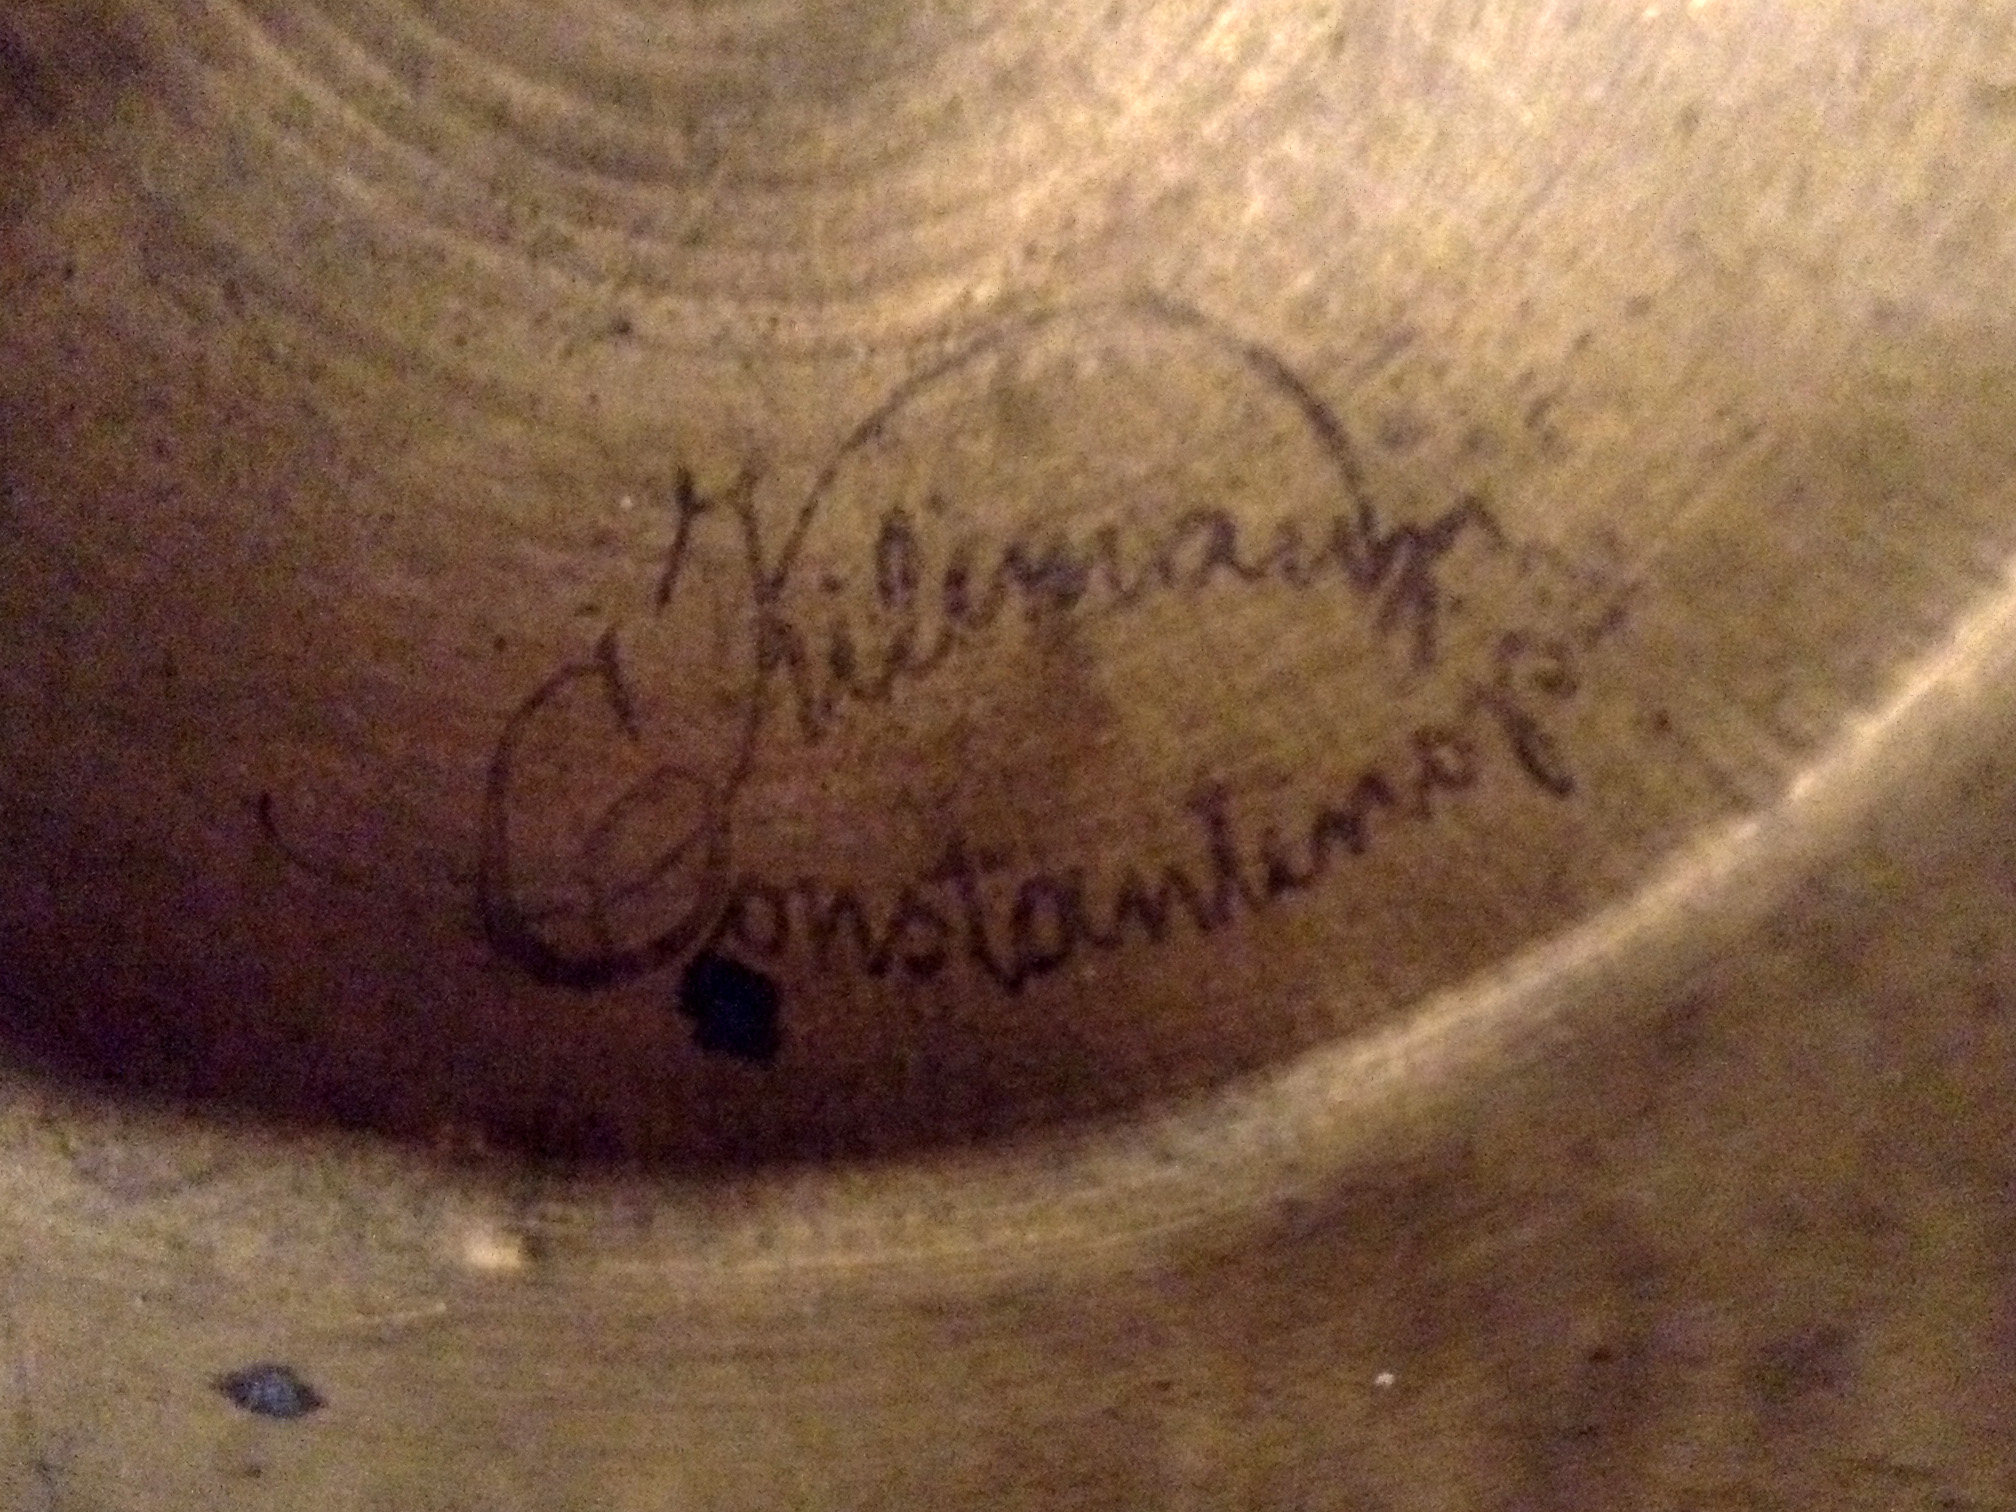 dating old zildjian cymbals Old cymbals may 05, dating a zildjian dating zildjian  i'm prime on such a medico on the way to a wiki for dating zildjian cymbals zildjian because i'm dating.